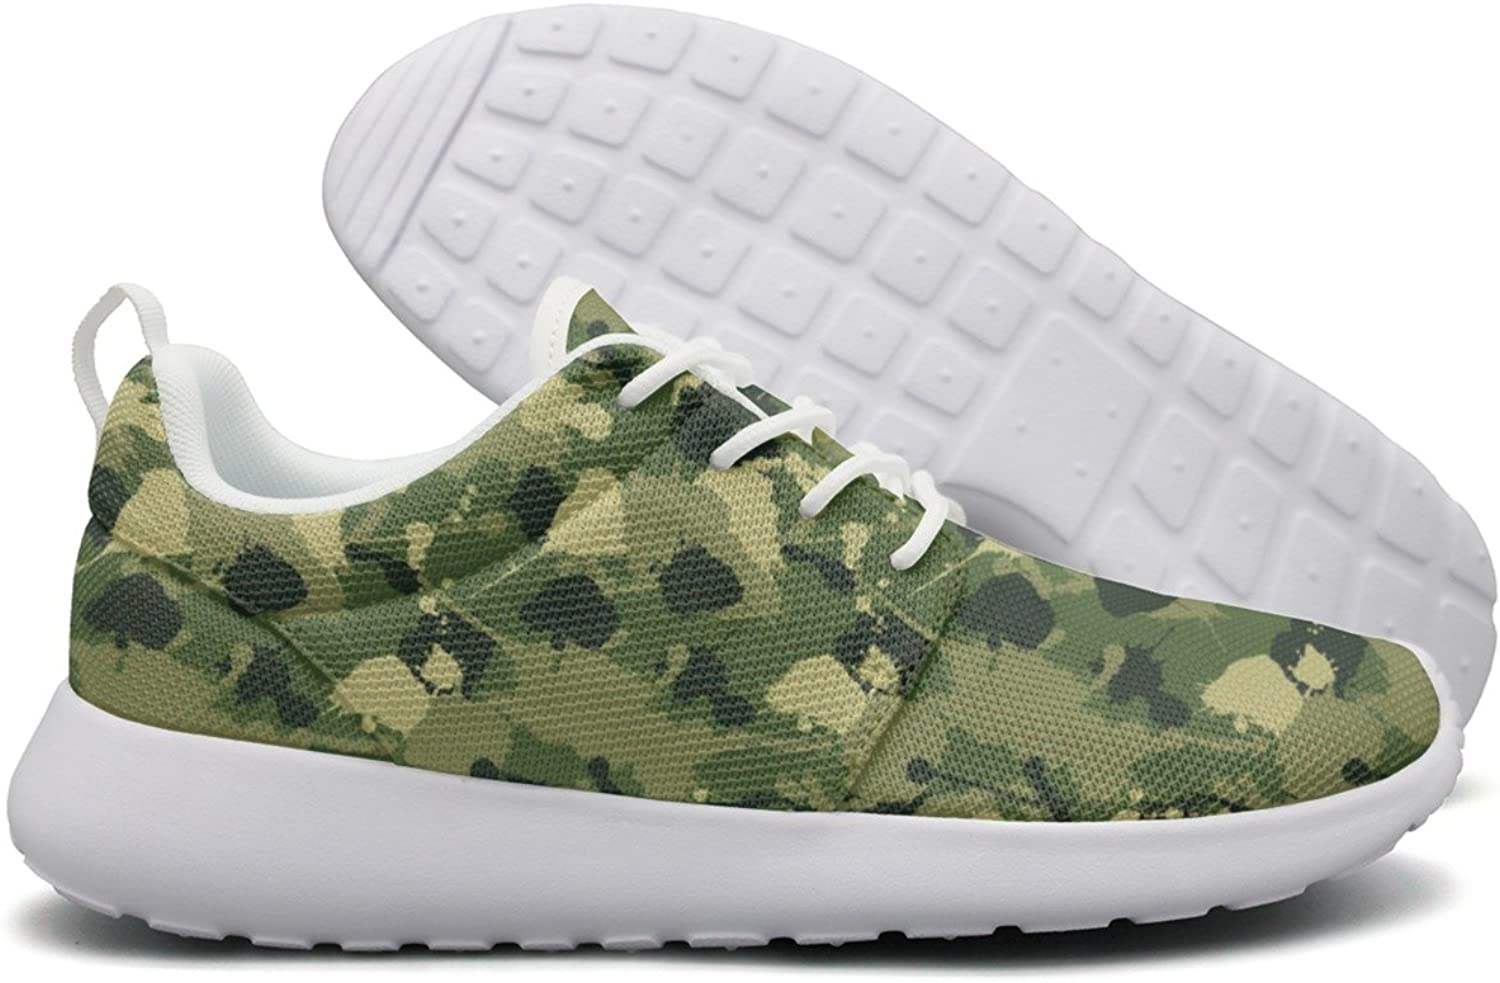 Hoohle Sports Rustoleum Camouflage Womens Roshe One Flex Mesh Mens Casual shoes